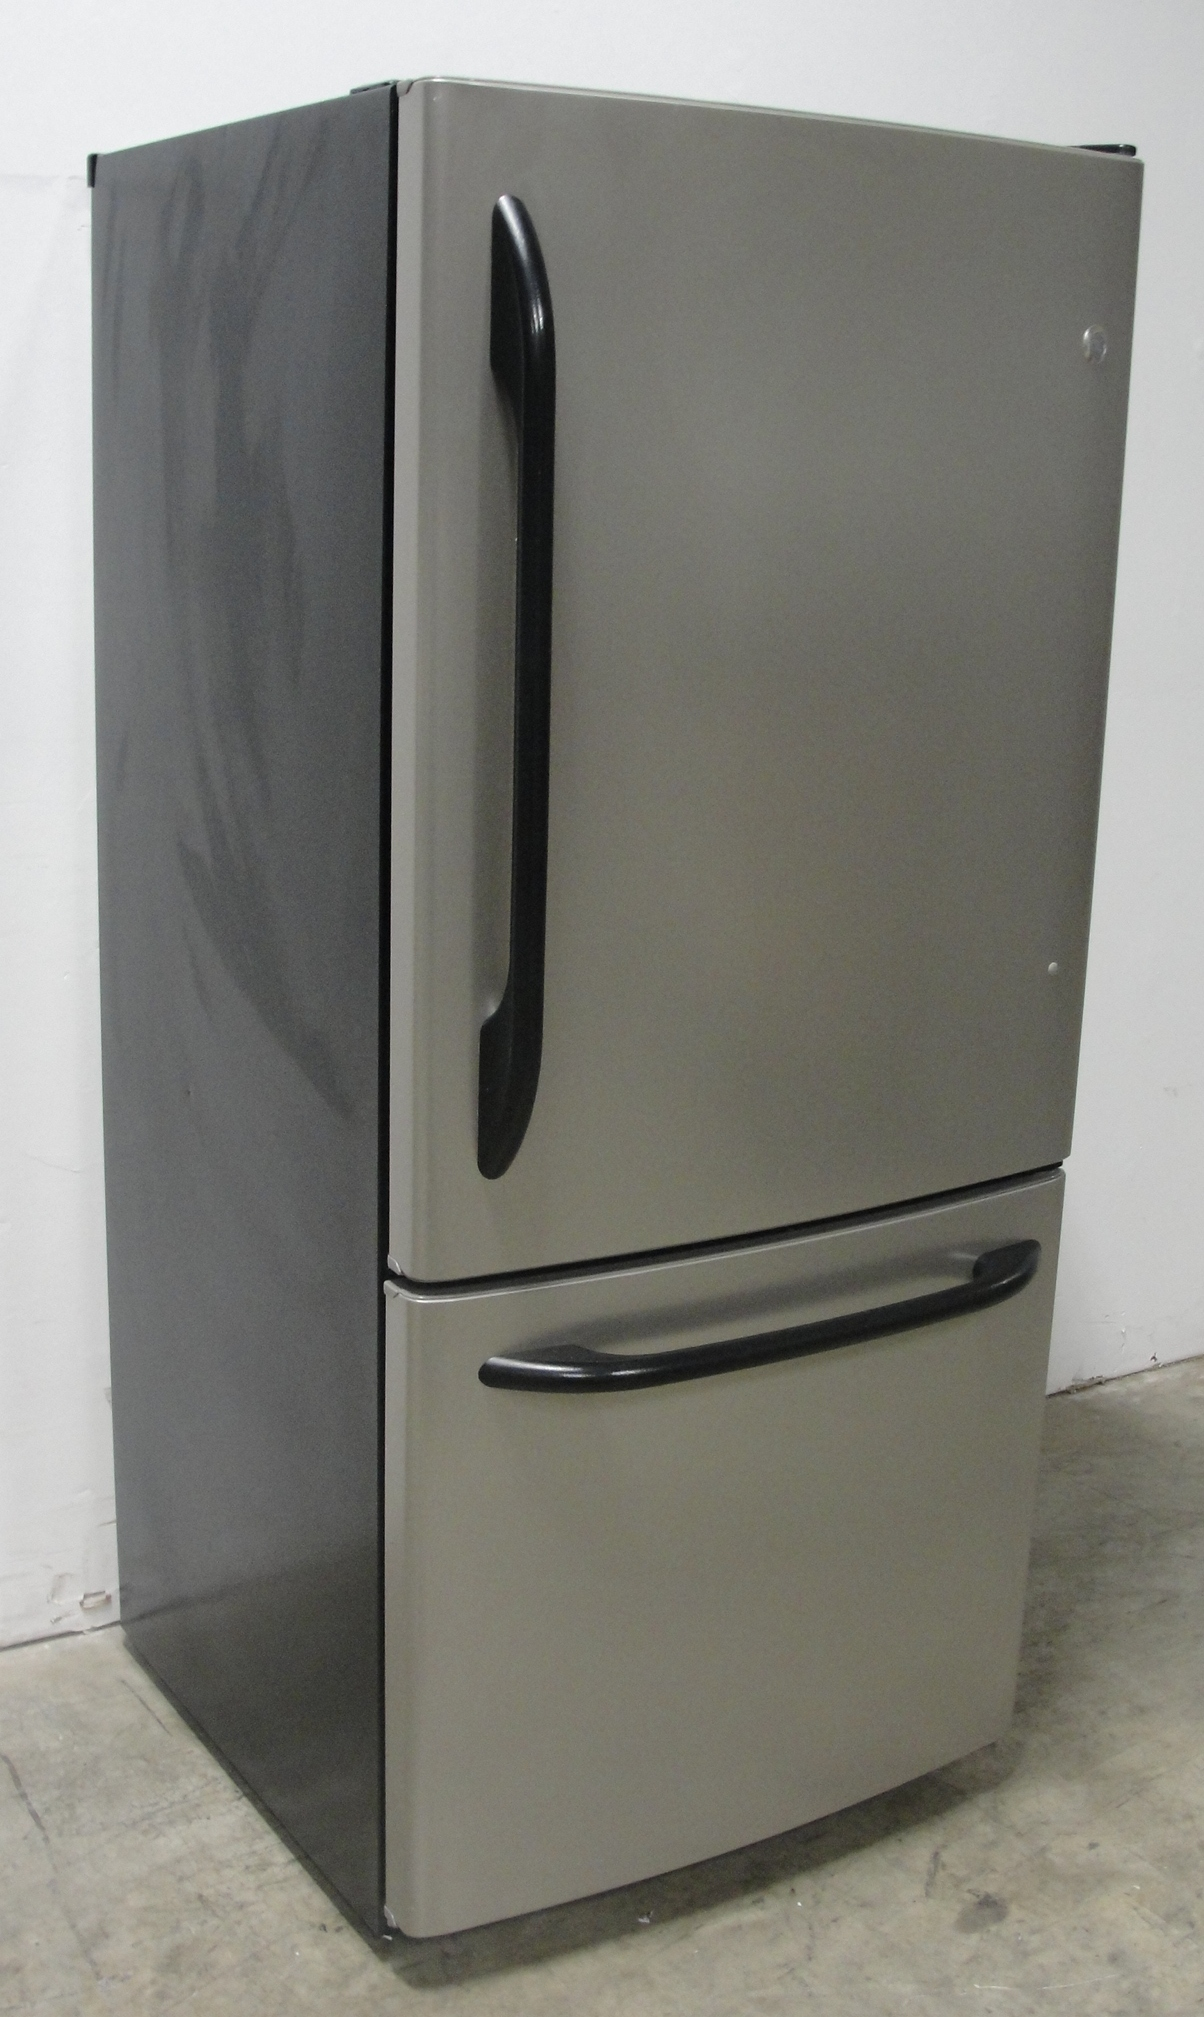 drawer index blomberg refrigeration door fridge american style french freezer